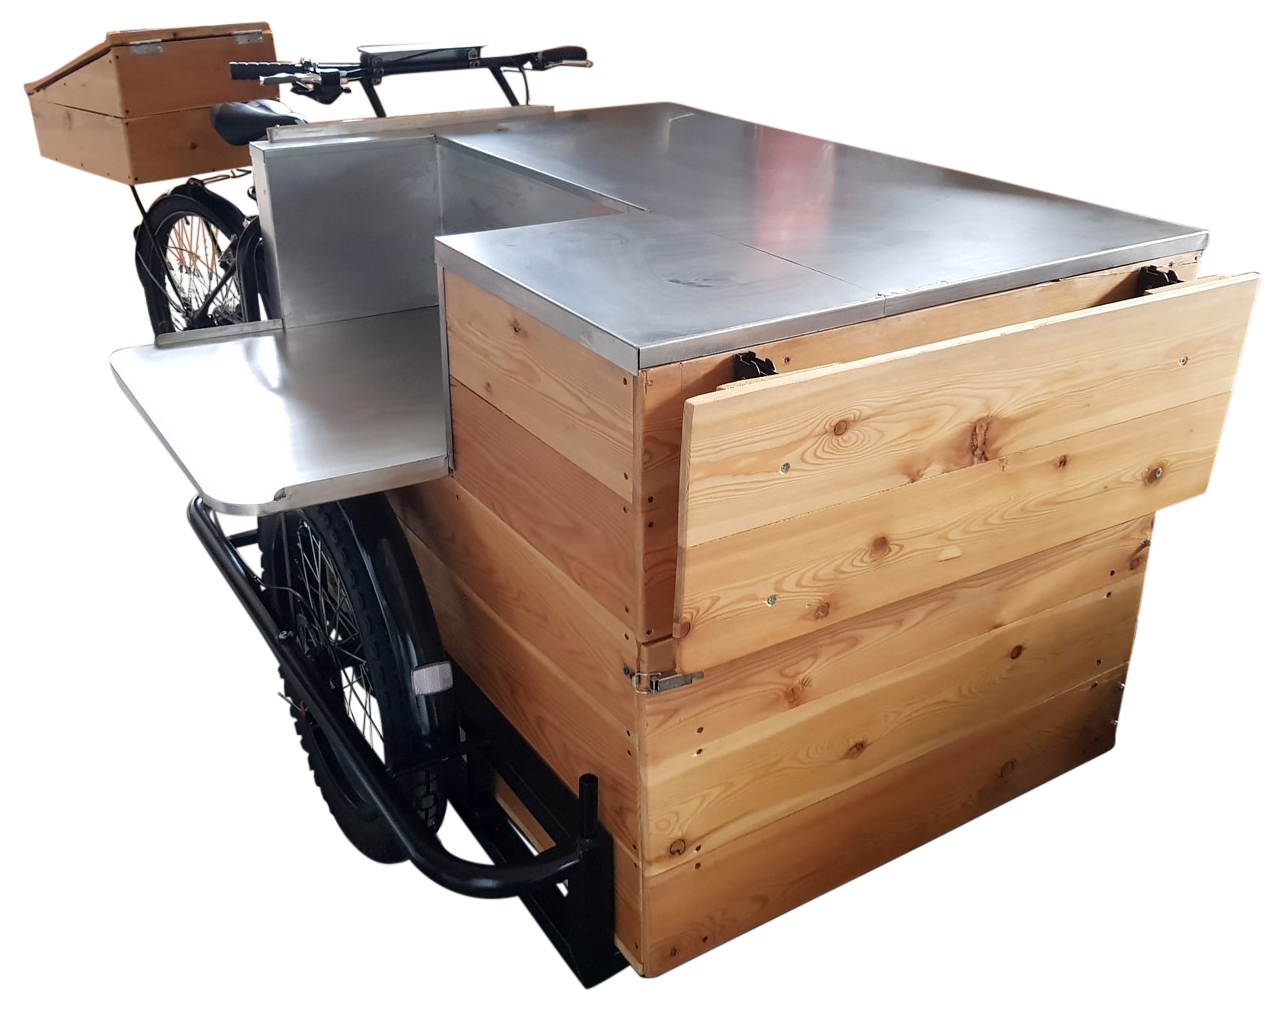 BANCO_HAWAI_TRICYCLE_WOODEN_WORKBENCH_IN_LEGNO_TRICICLO_STREETFOOD_4